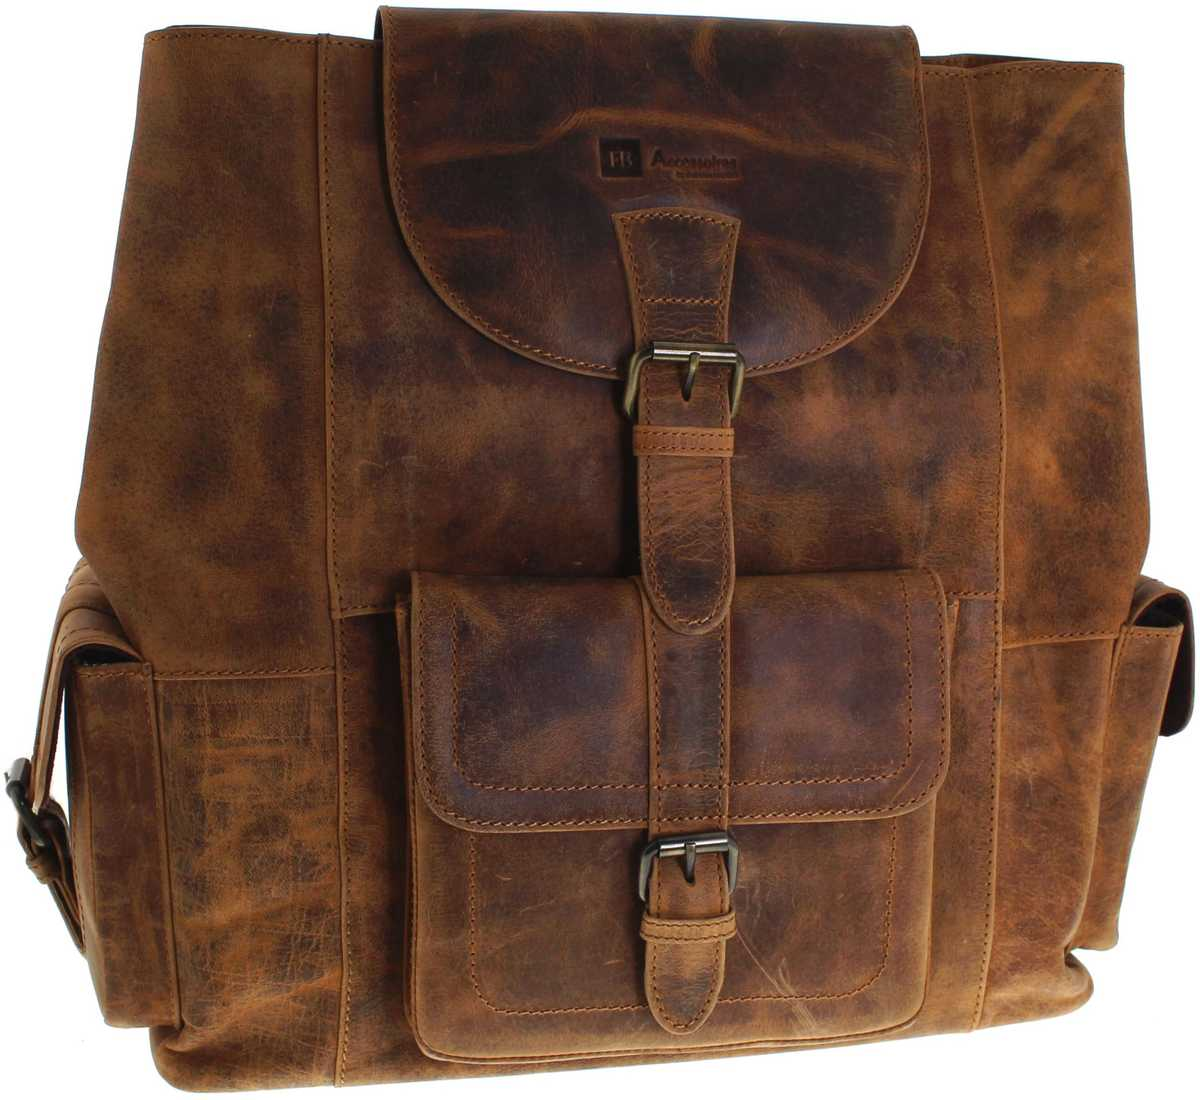 Fashion Boots FB Bags 1213 Backbag Distressed Red Ledertasche